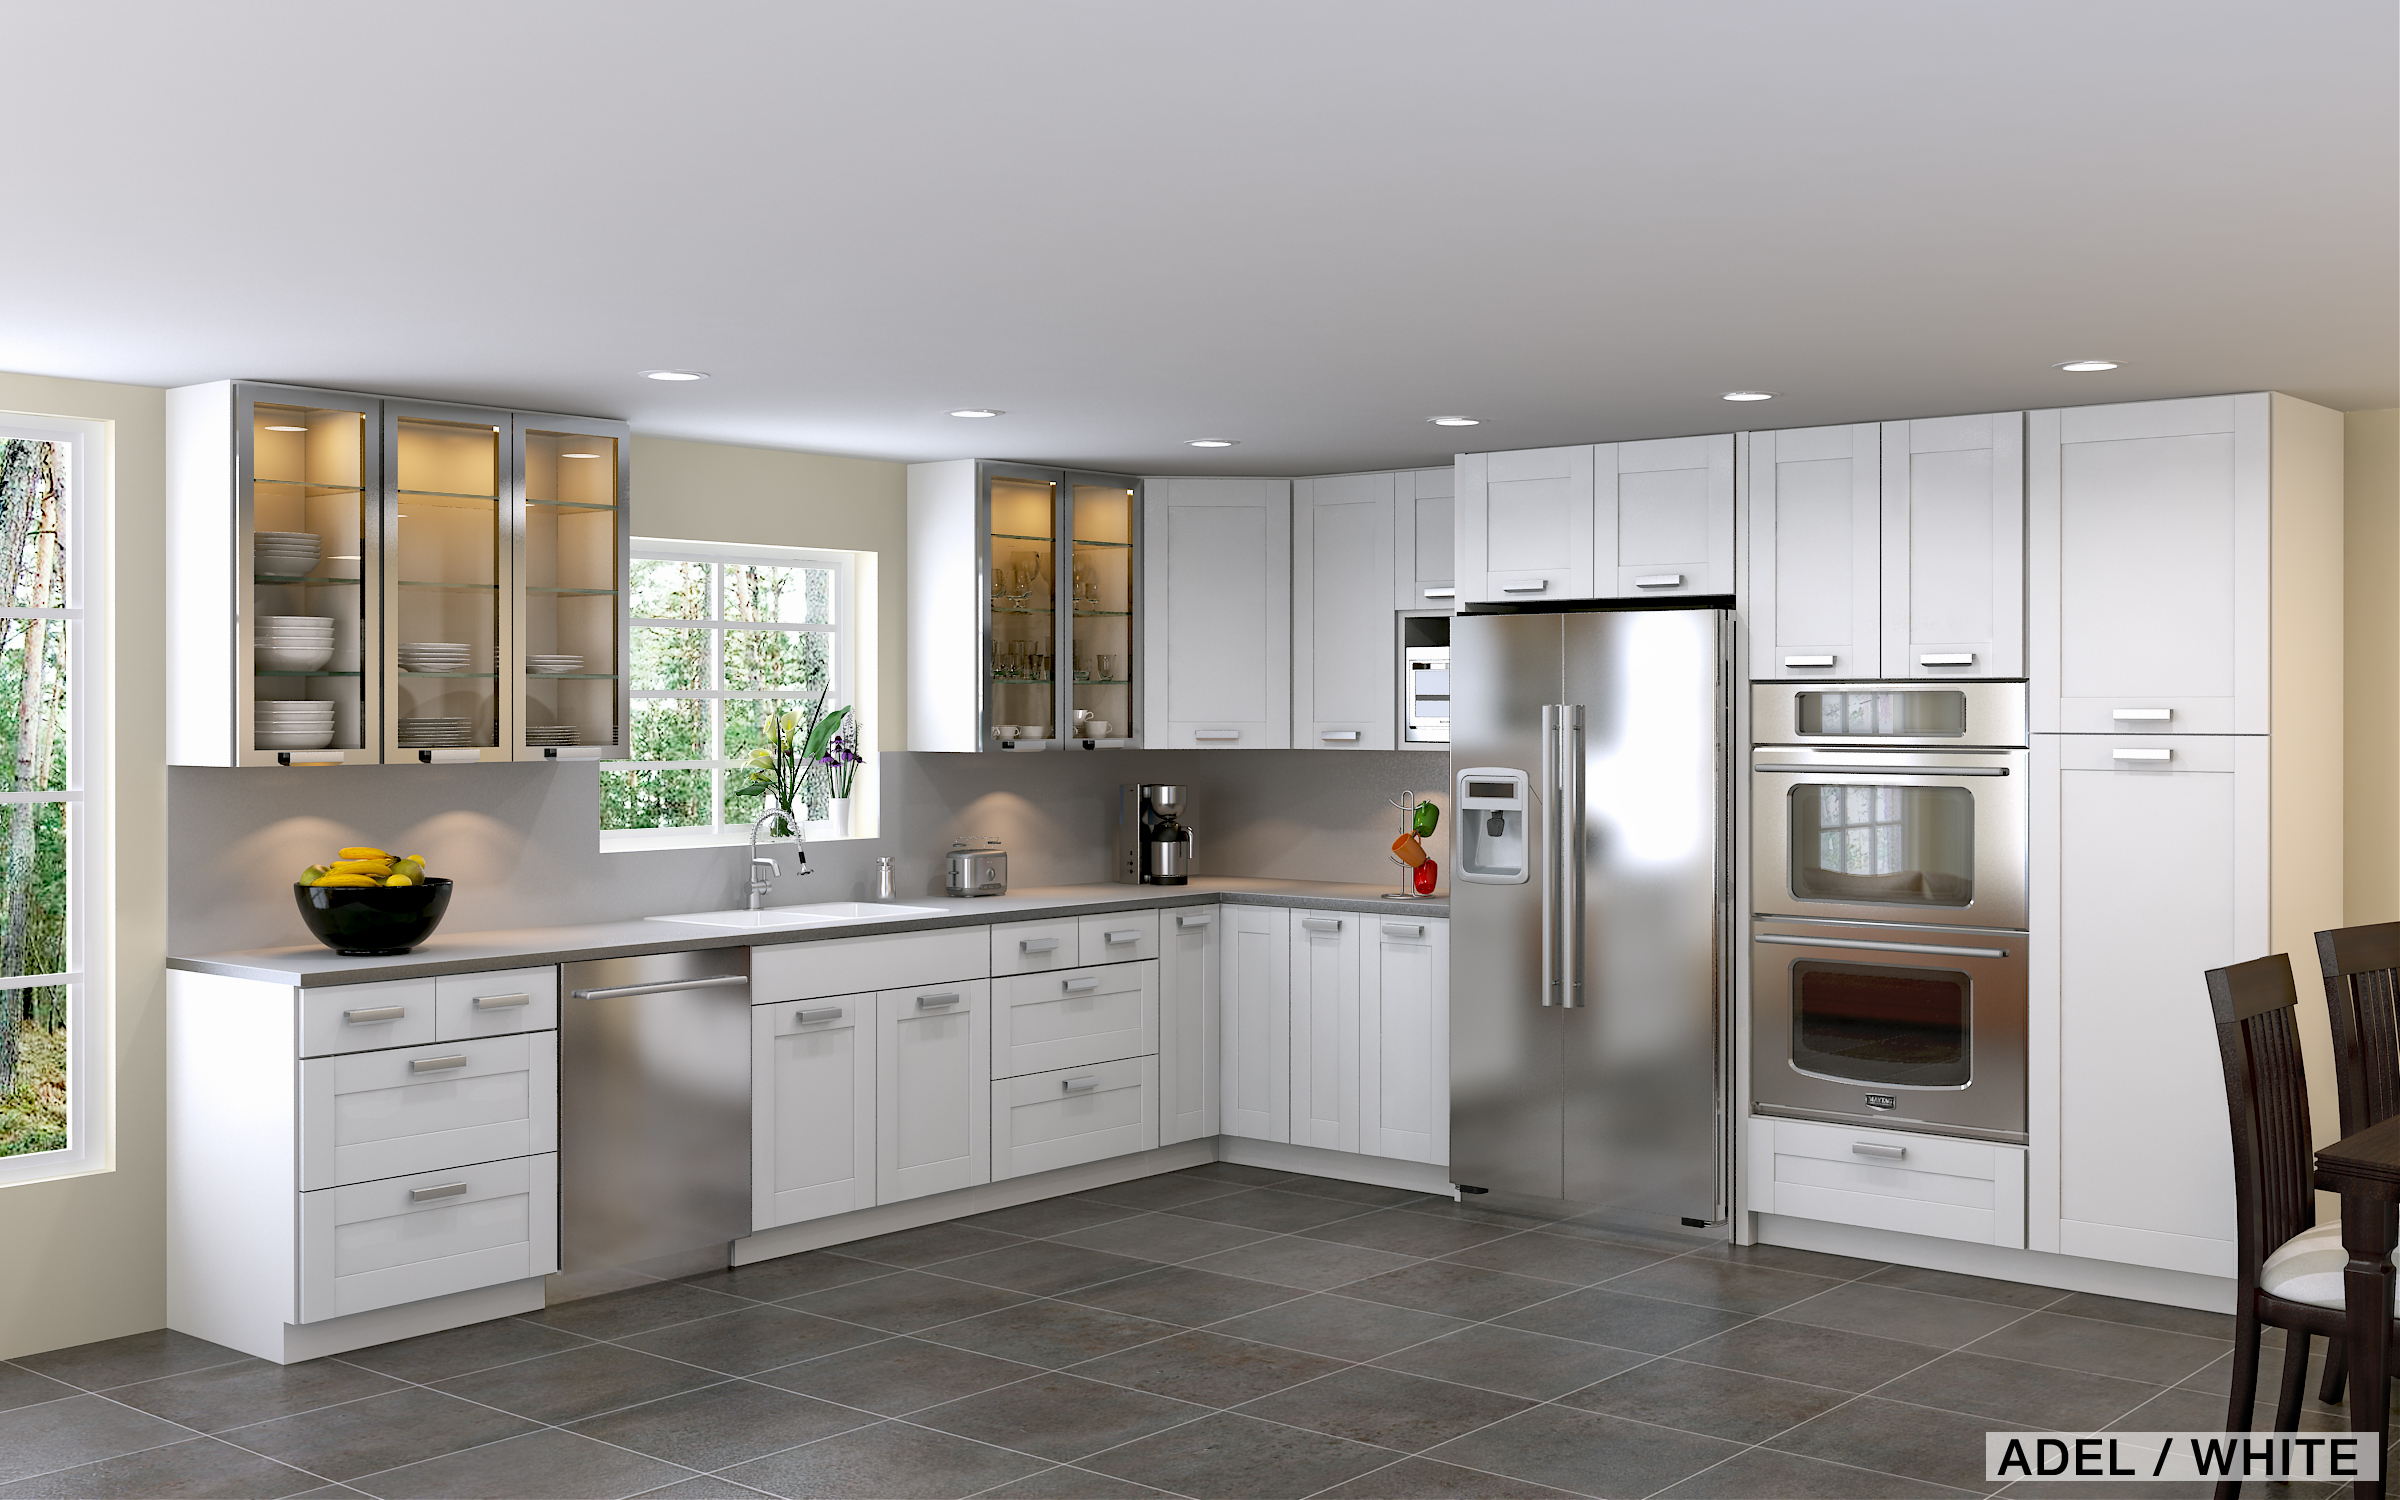 Ikdo the ikea kitchen design online blog page 16 for Kitchen cabinet remodel